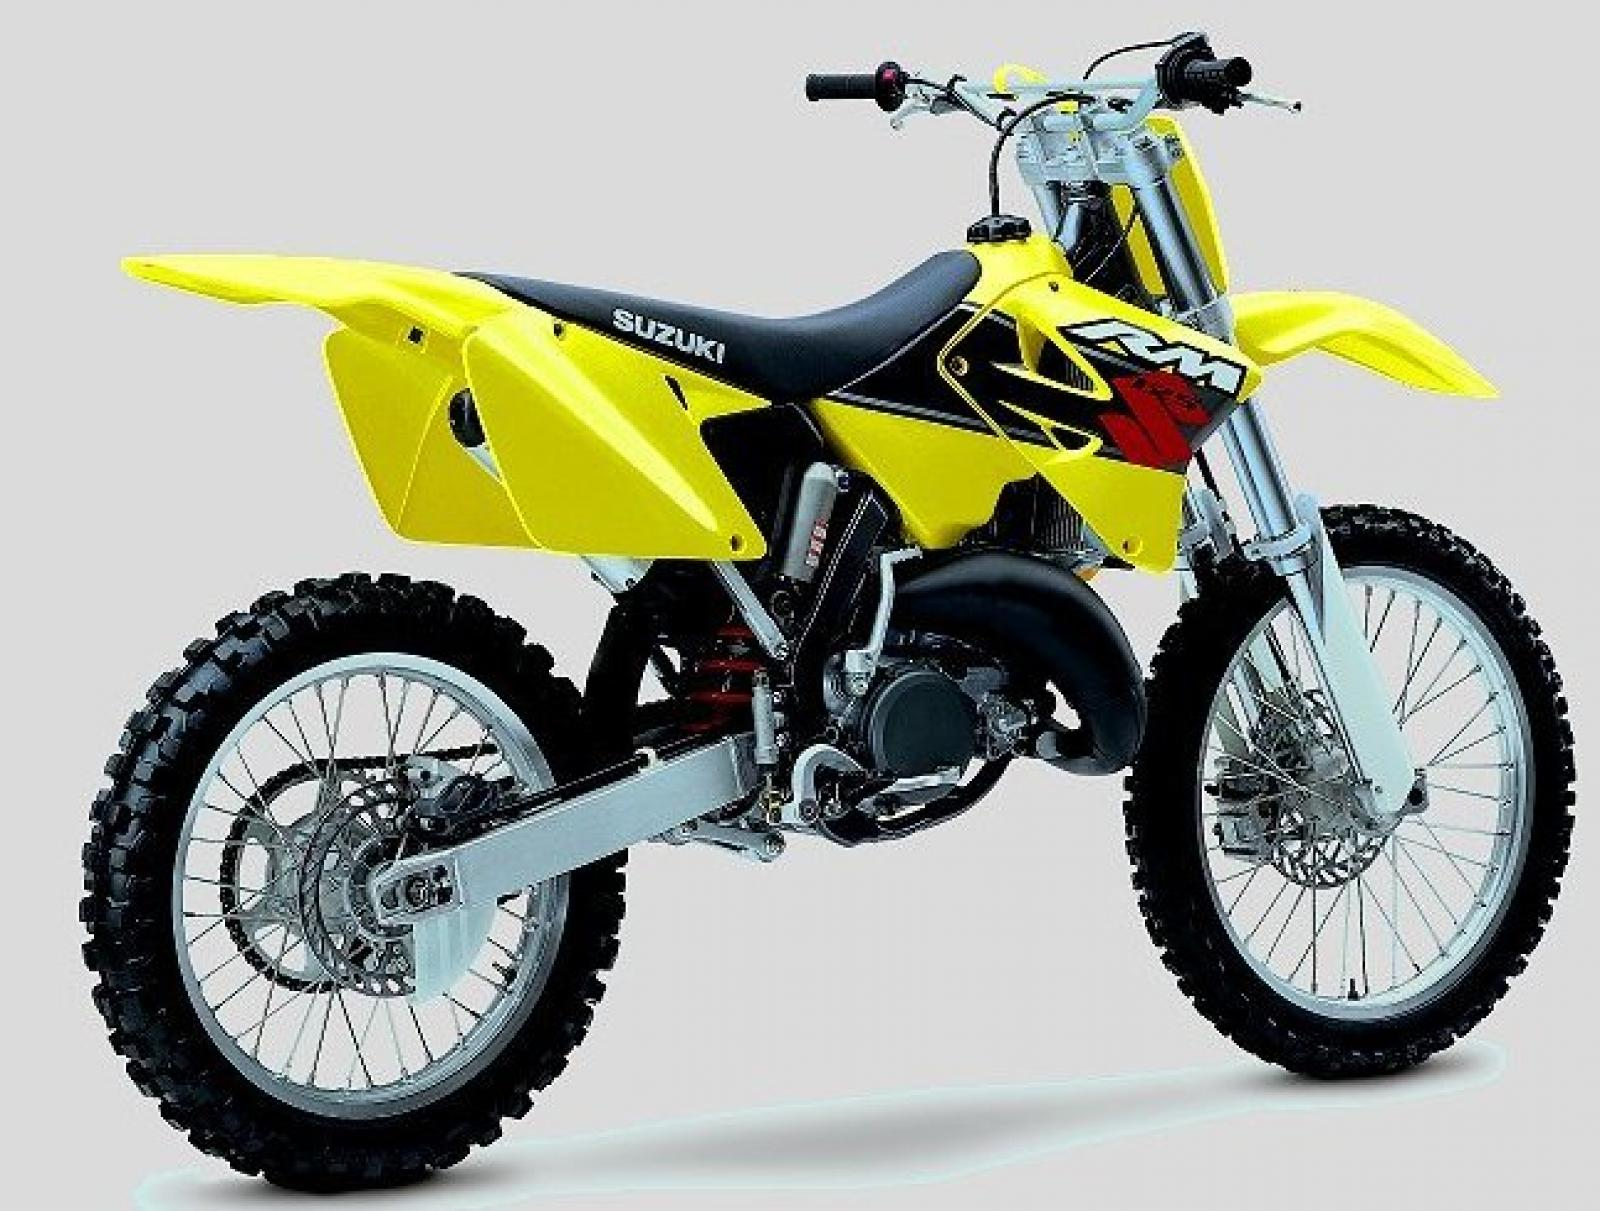 2005 suzuki rm 125 moto zombdrive com. Black Bedroom Furniture Sets. Home Design Ideas